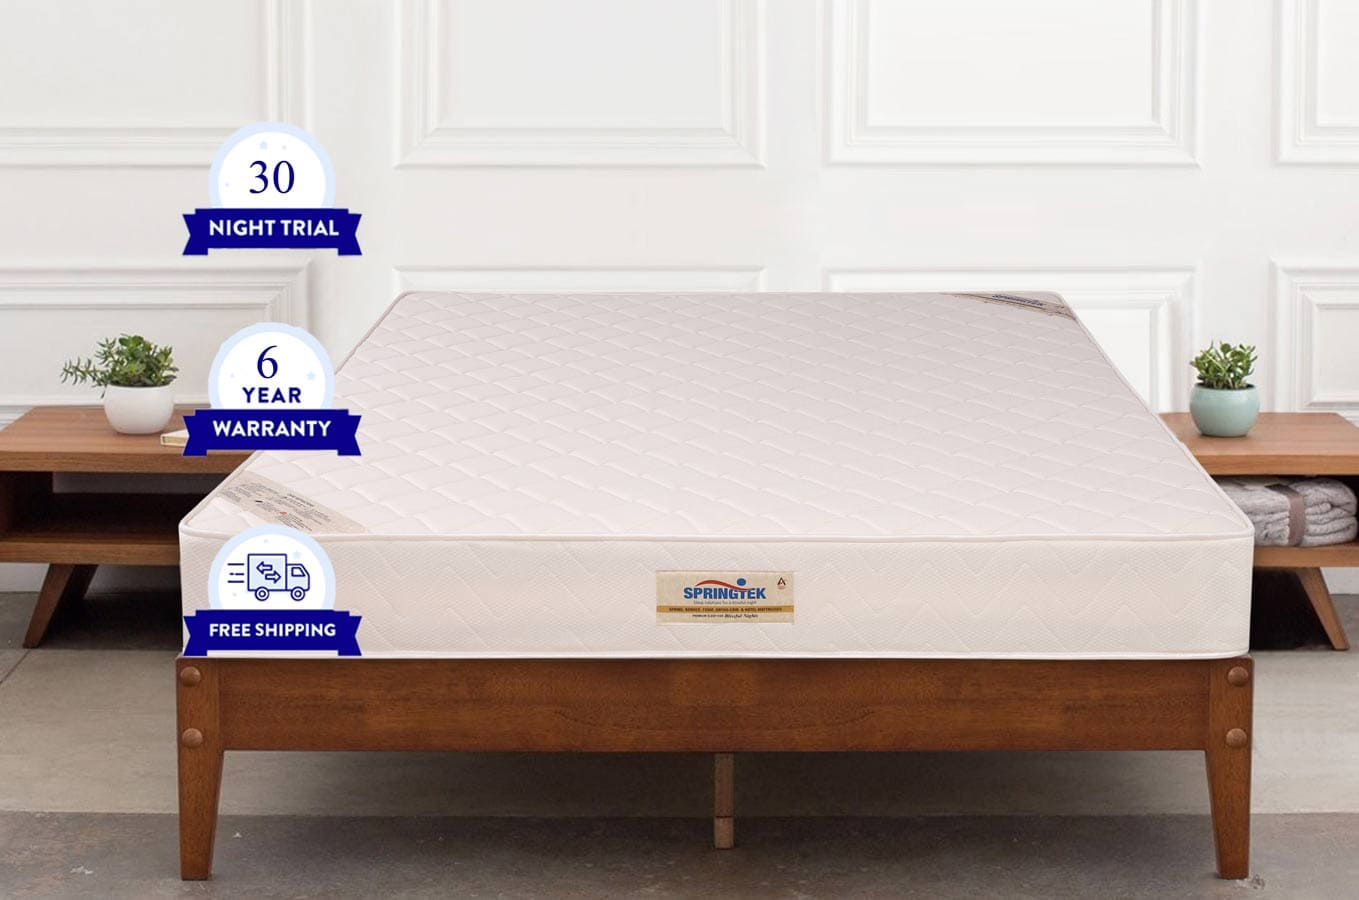 Best mattress in india - springtek